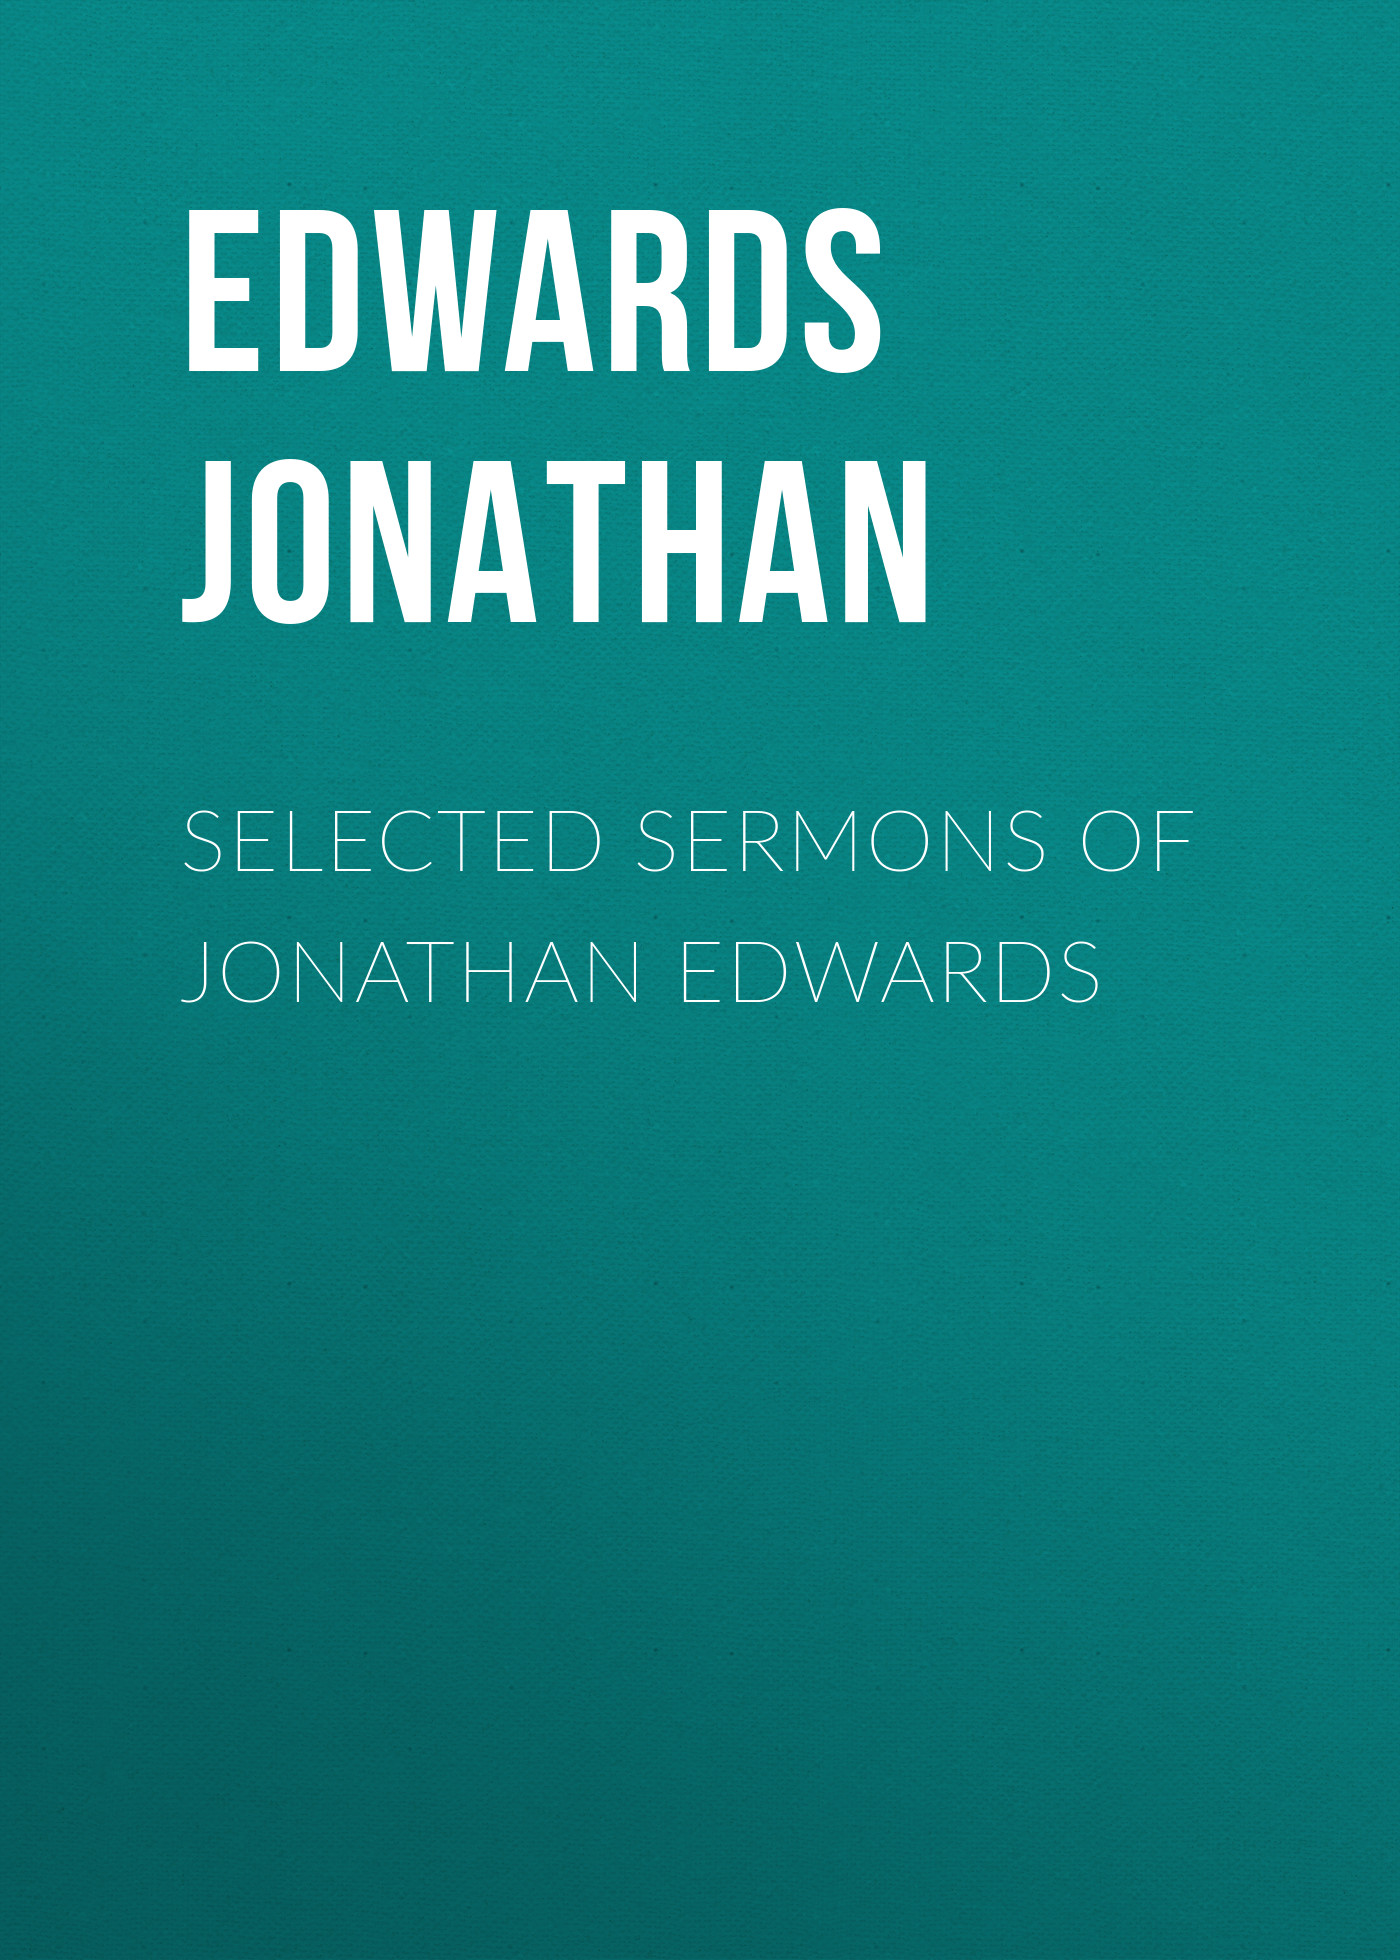 Edwards Jonathan Selected Sermons of Jonathan Edwards edwards richard researching education through actor network theory